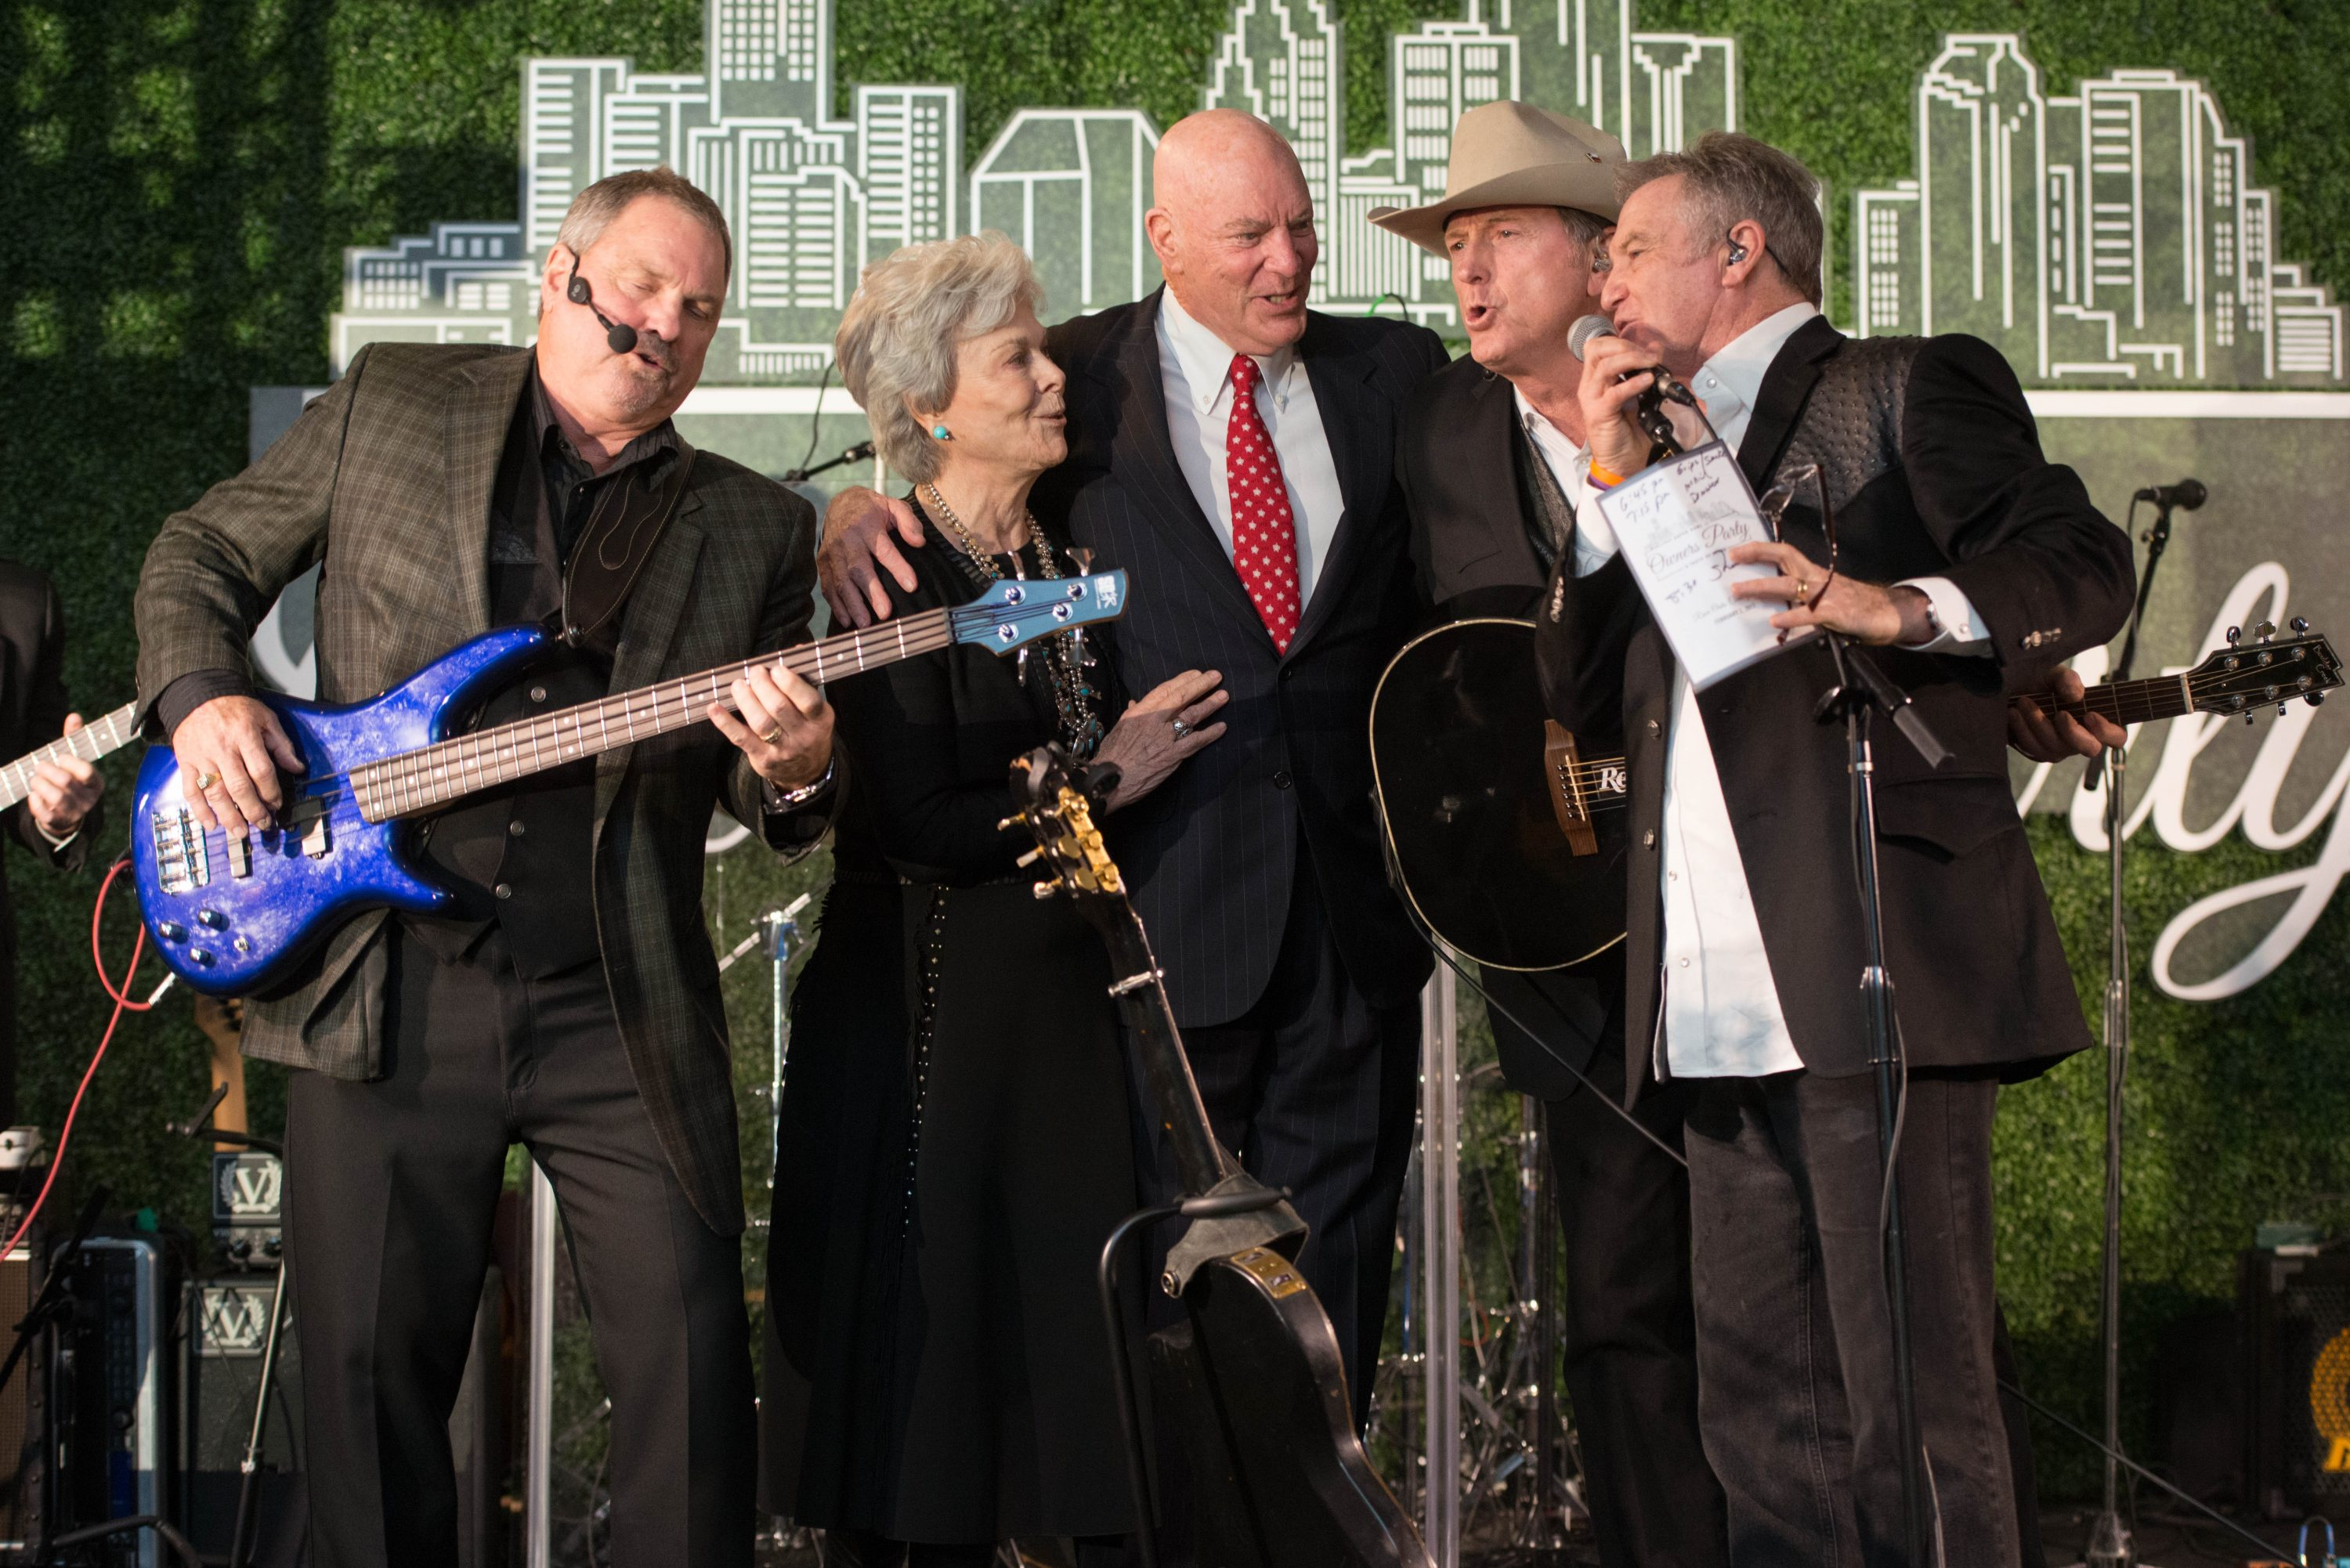 Robert and Janice McNair host the Super Bowl LI Owner Party at the River Oaks Country Club with special performances by the Gaitlin Brothers and Clay Walker